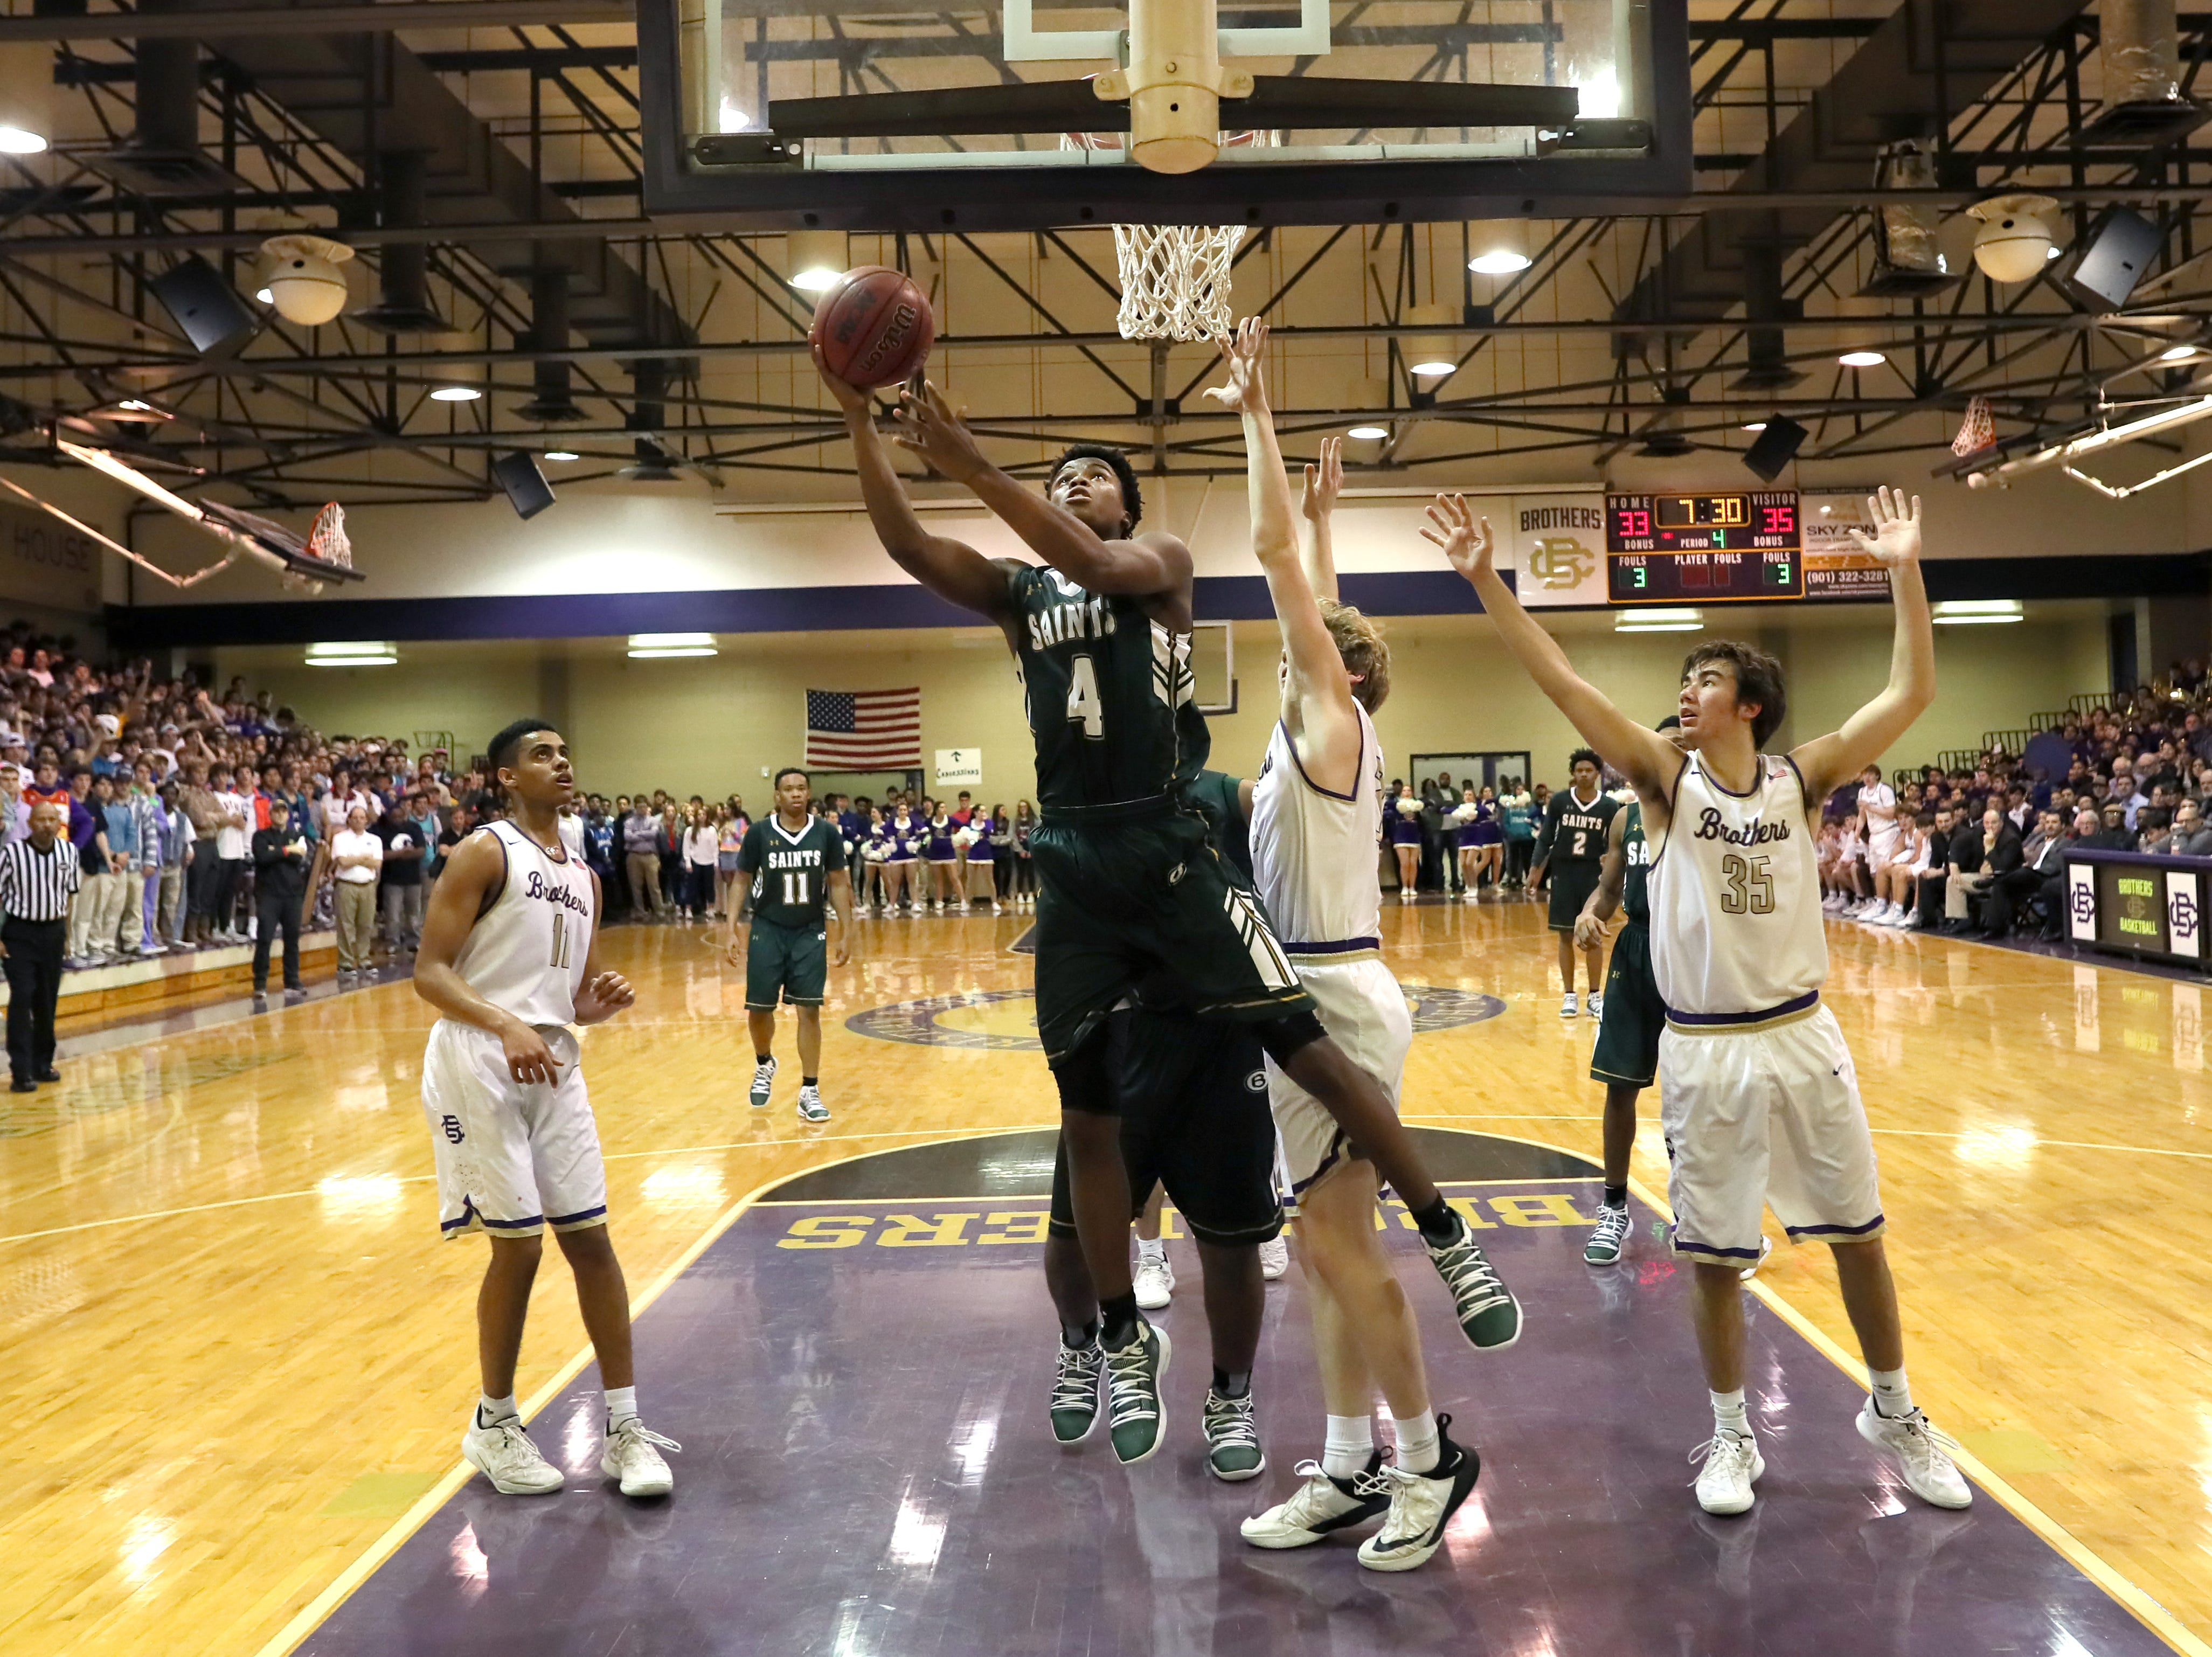 Briarcrest's Marcellus Brigham lays the ball up during their game at Christian Brothers High School on Friday, Jan. 11, 2019.